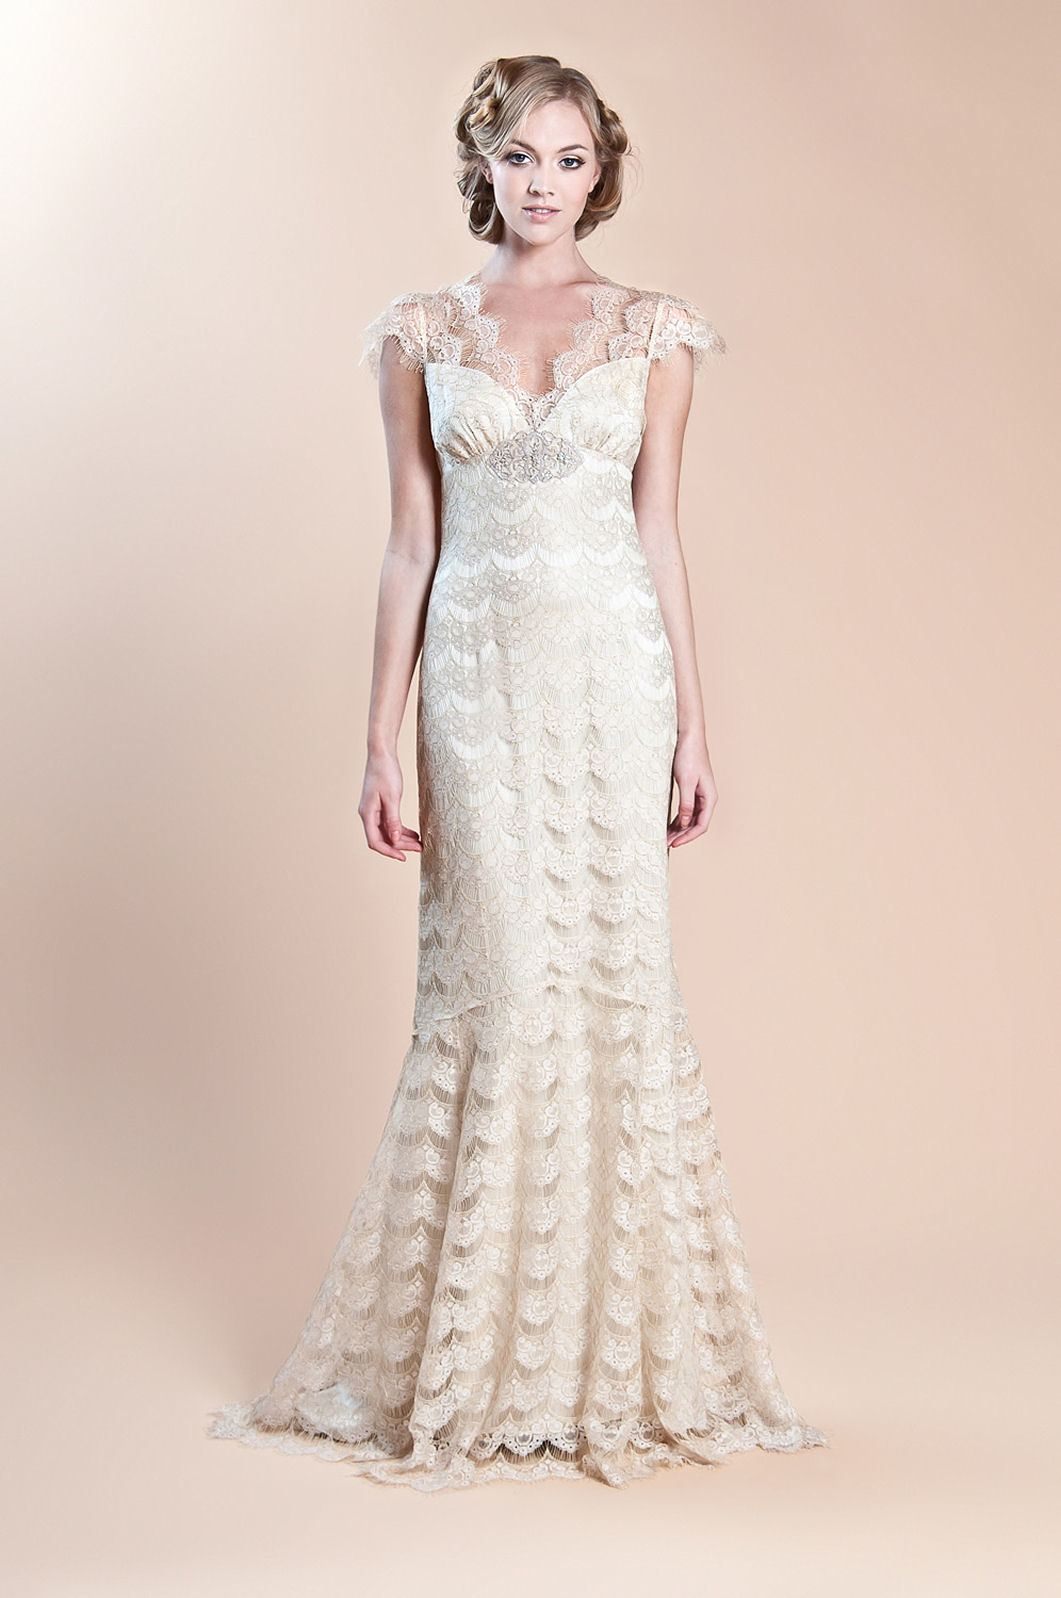 Claire Pettibone Papillon wedding dress with illusion embroidered butterfly  back, with floral details and sweeping train